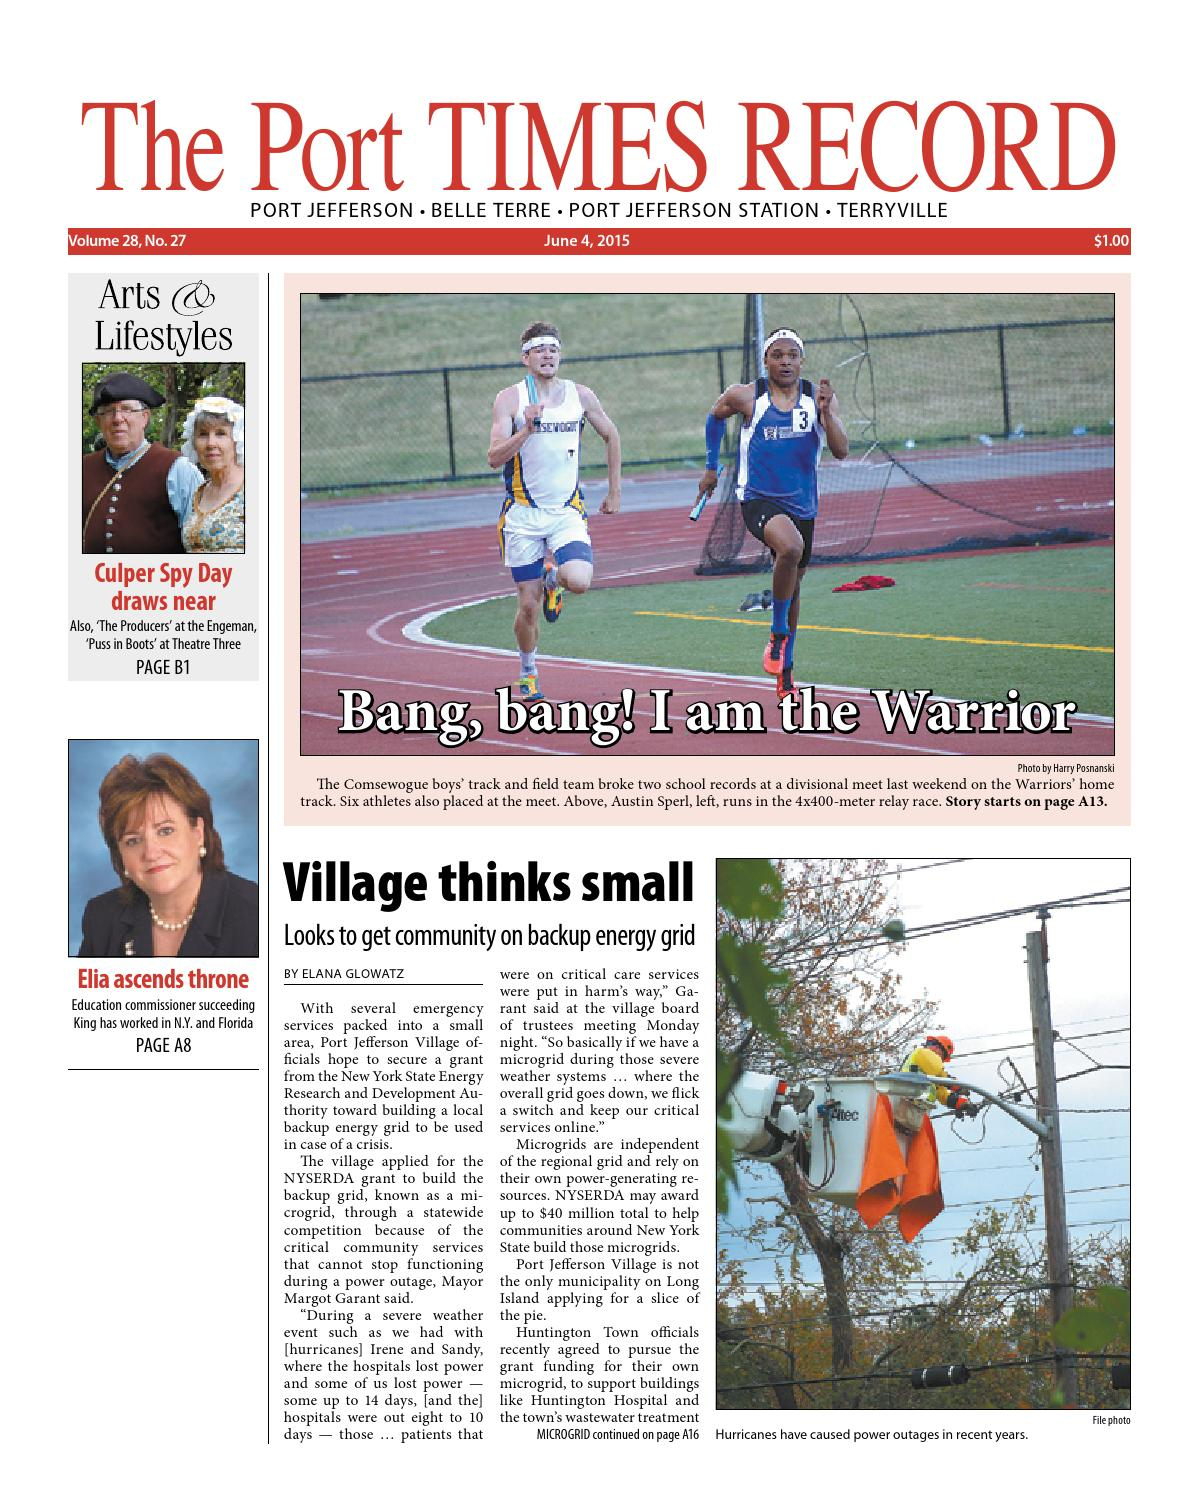 The port times record june 4 2015 by tbr news media issuu fandeluxe Image collections